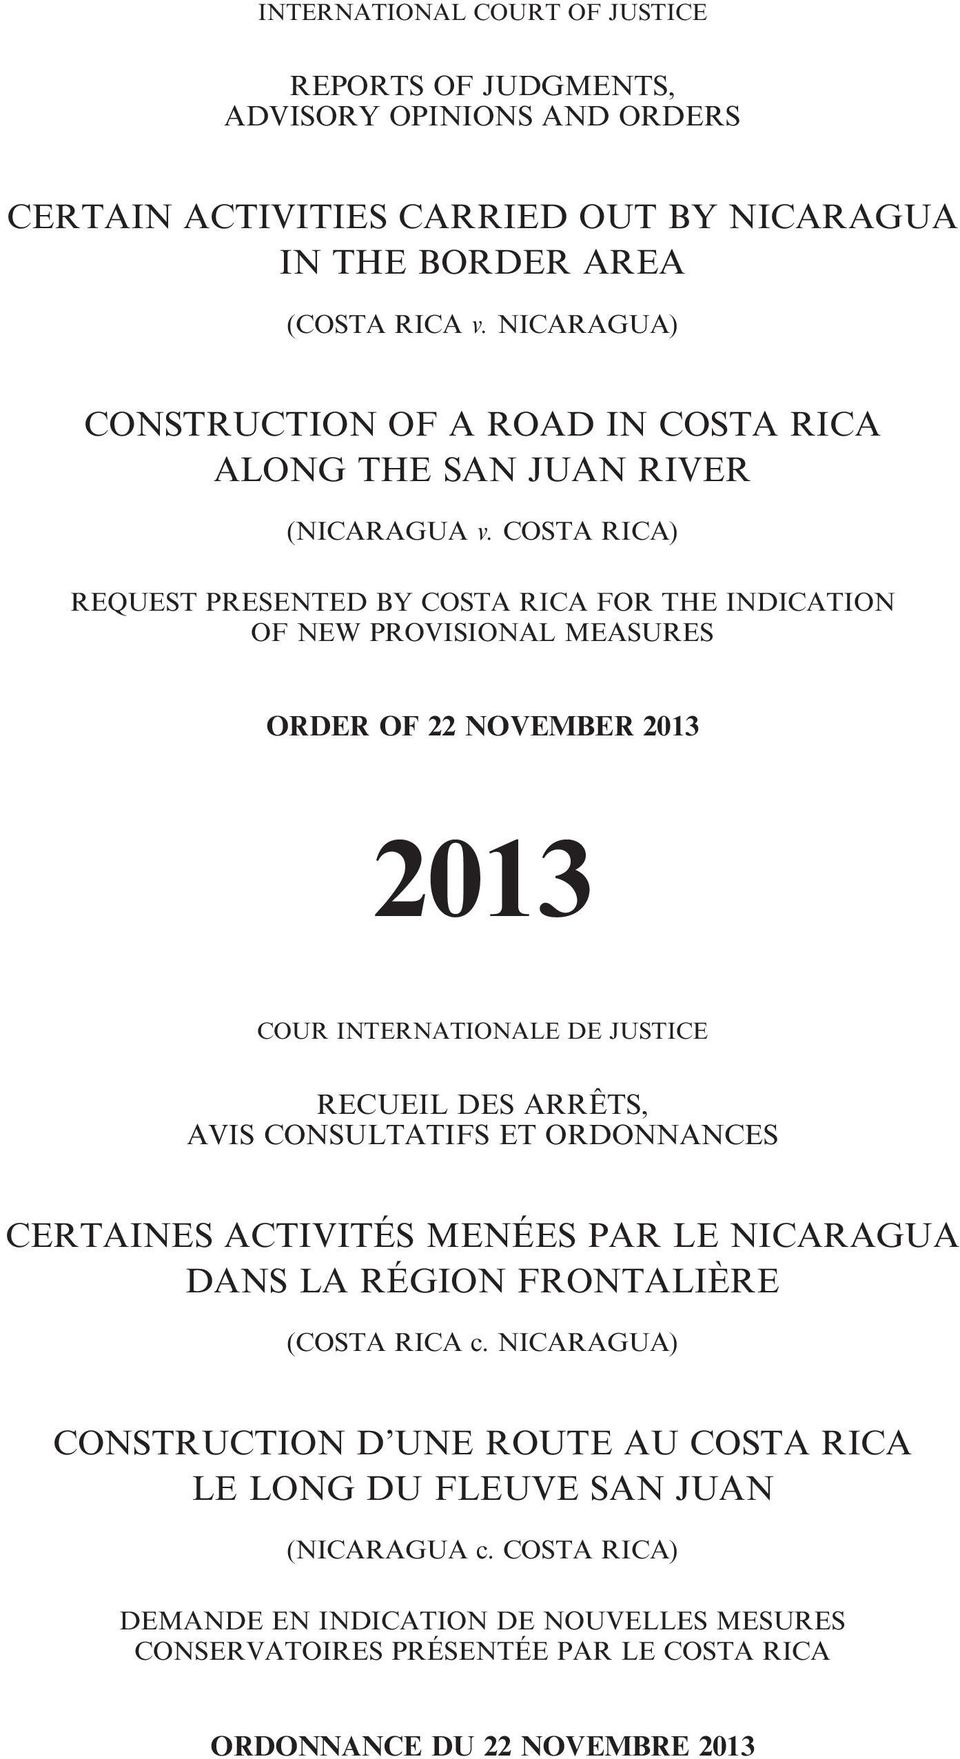 COSTA RICA) REQUEST PRESENTED BY COSTA RICA FOR THE INDICATION OF NEW PROVISIONAL MEASURES ORDER OF 22 NOVEMBER 2013 2013 COUR INTERNATIONALE DE JUSTICE RECUEIL DES ARRÊTS, AVIS